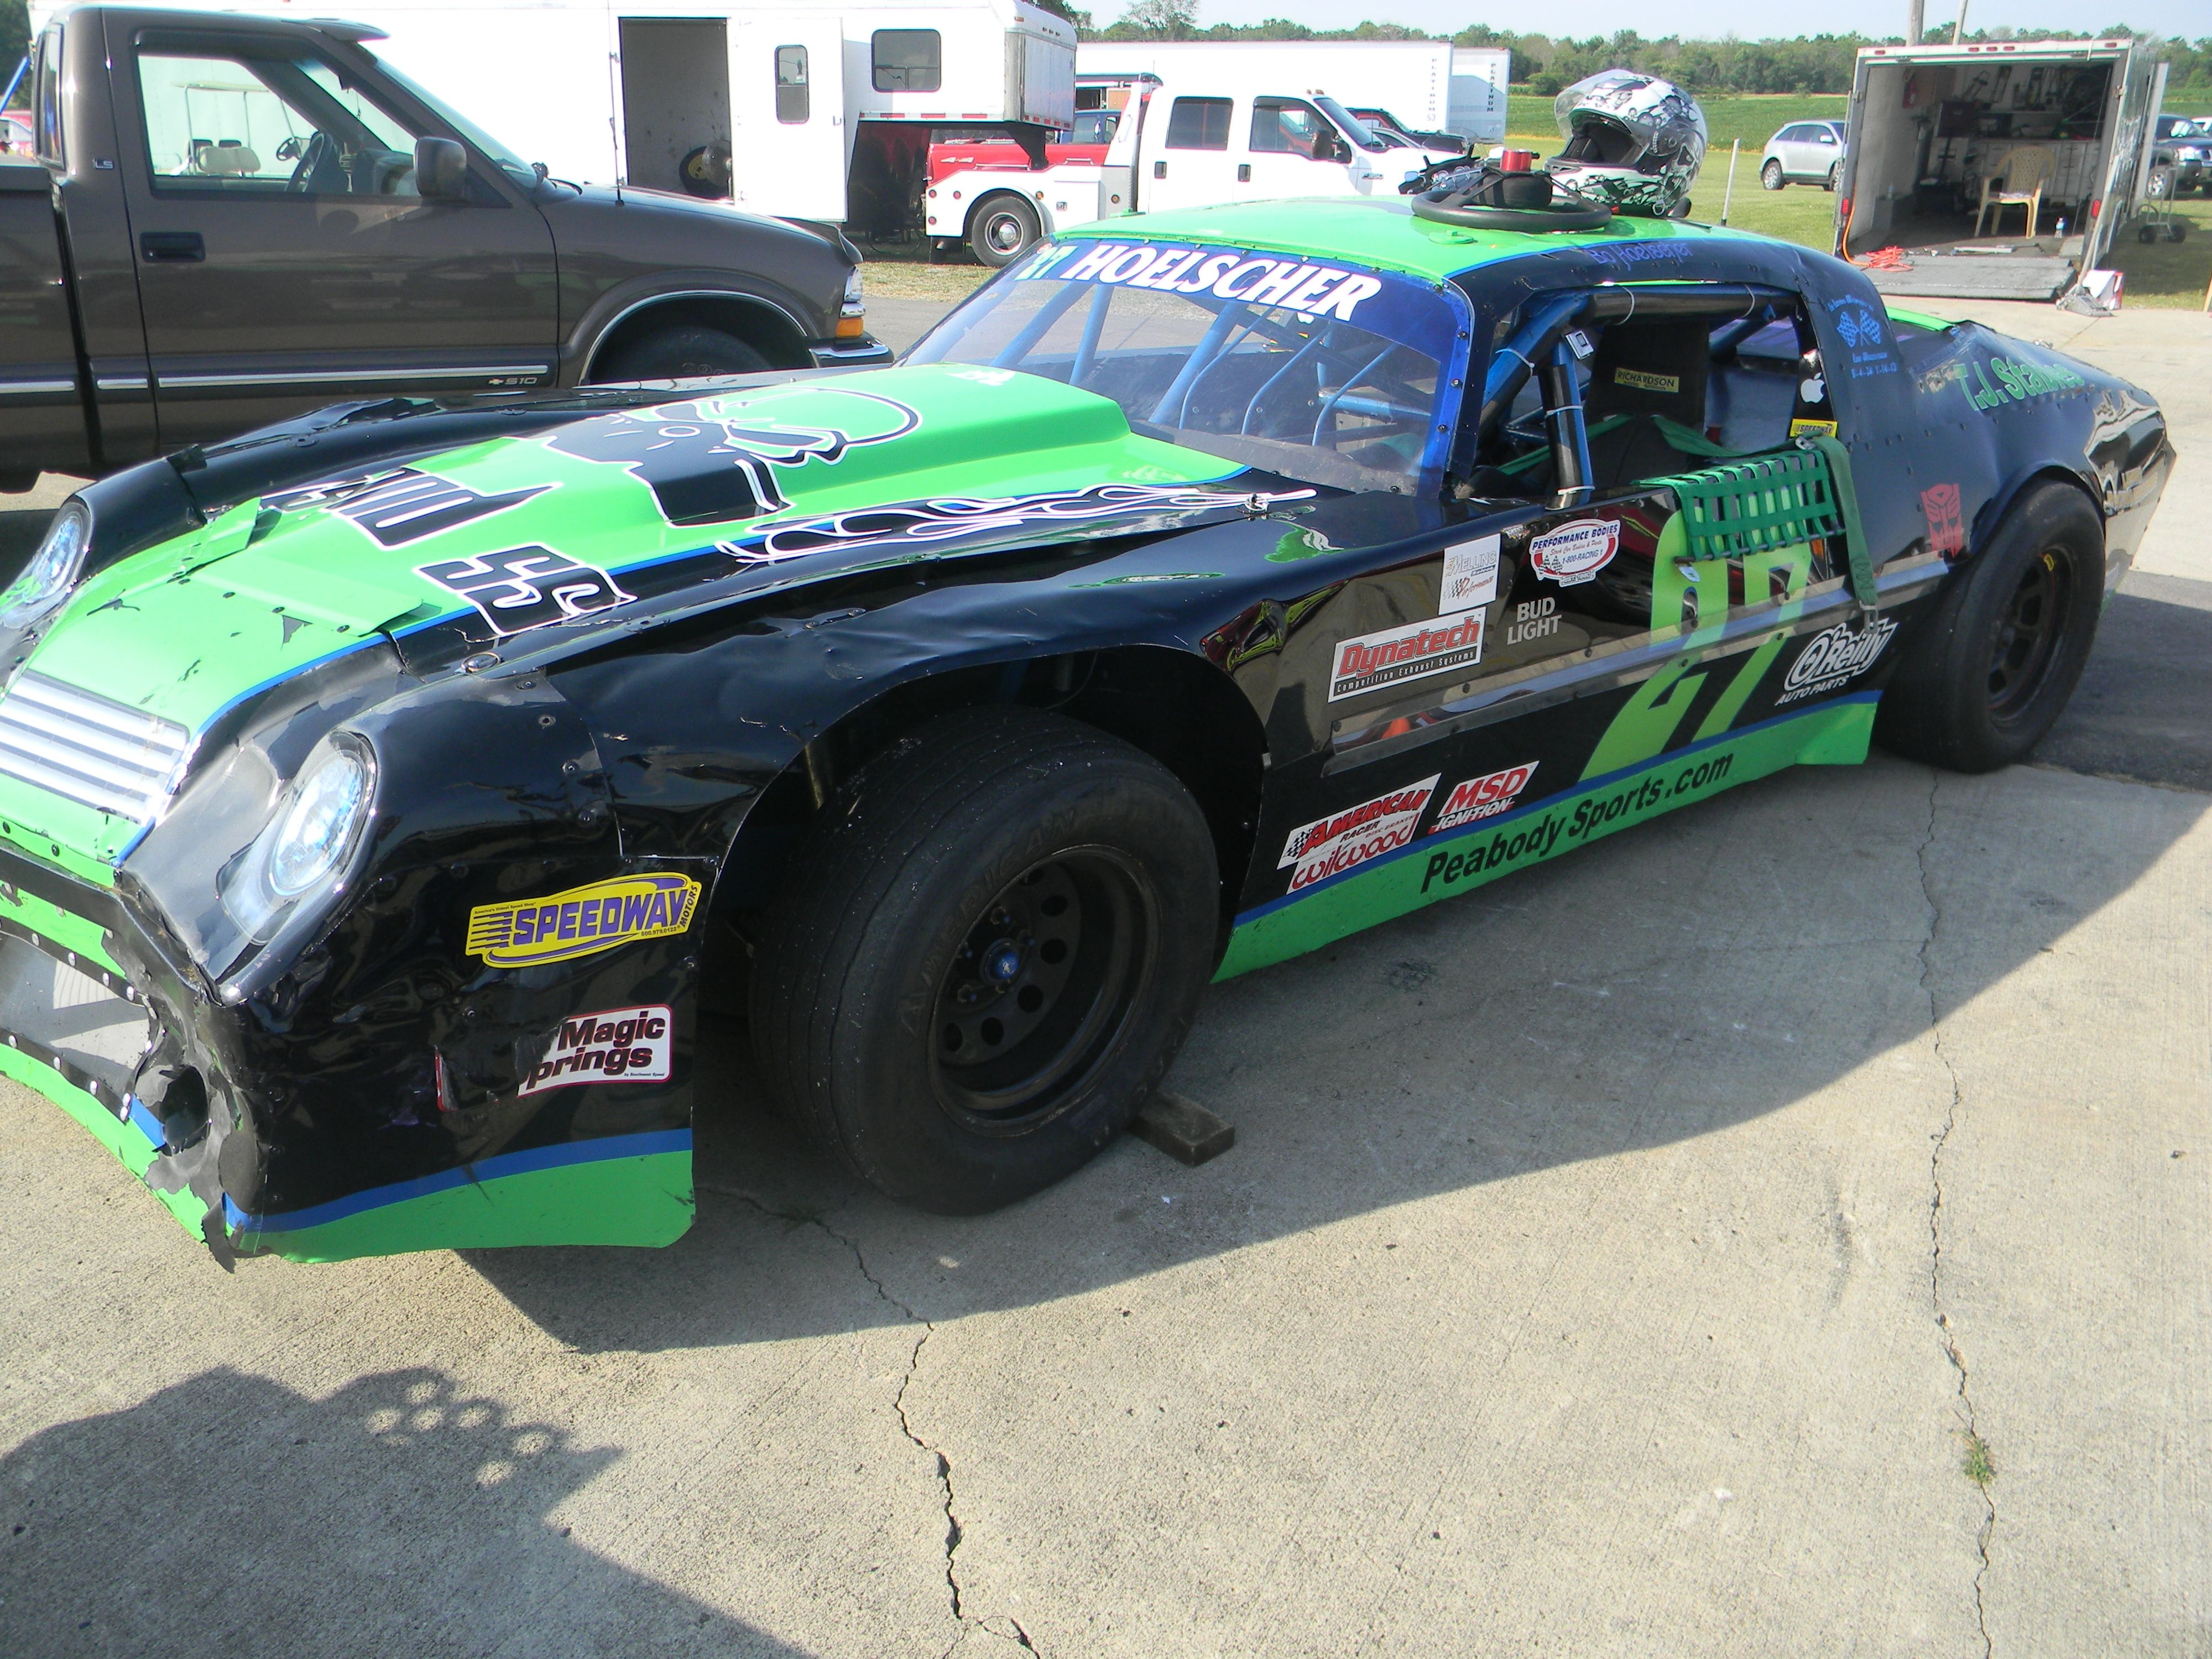 Pin by ZoilRacing on Ohio Race Cars | Pinterest | Racing baby ...